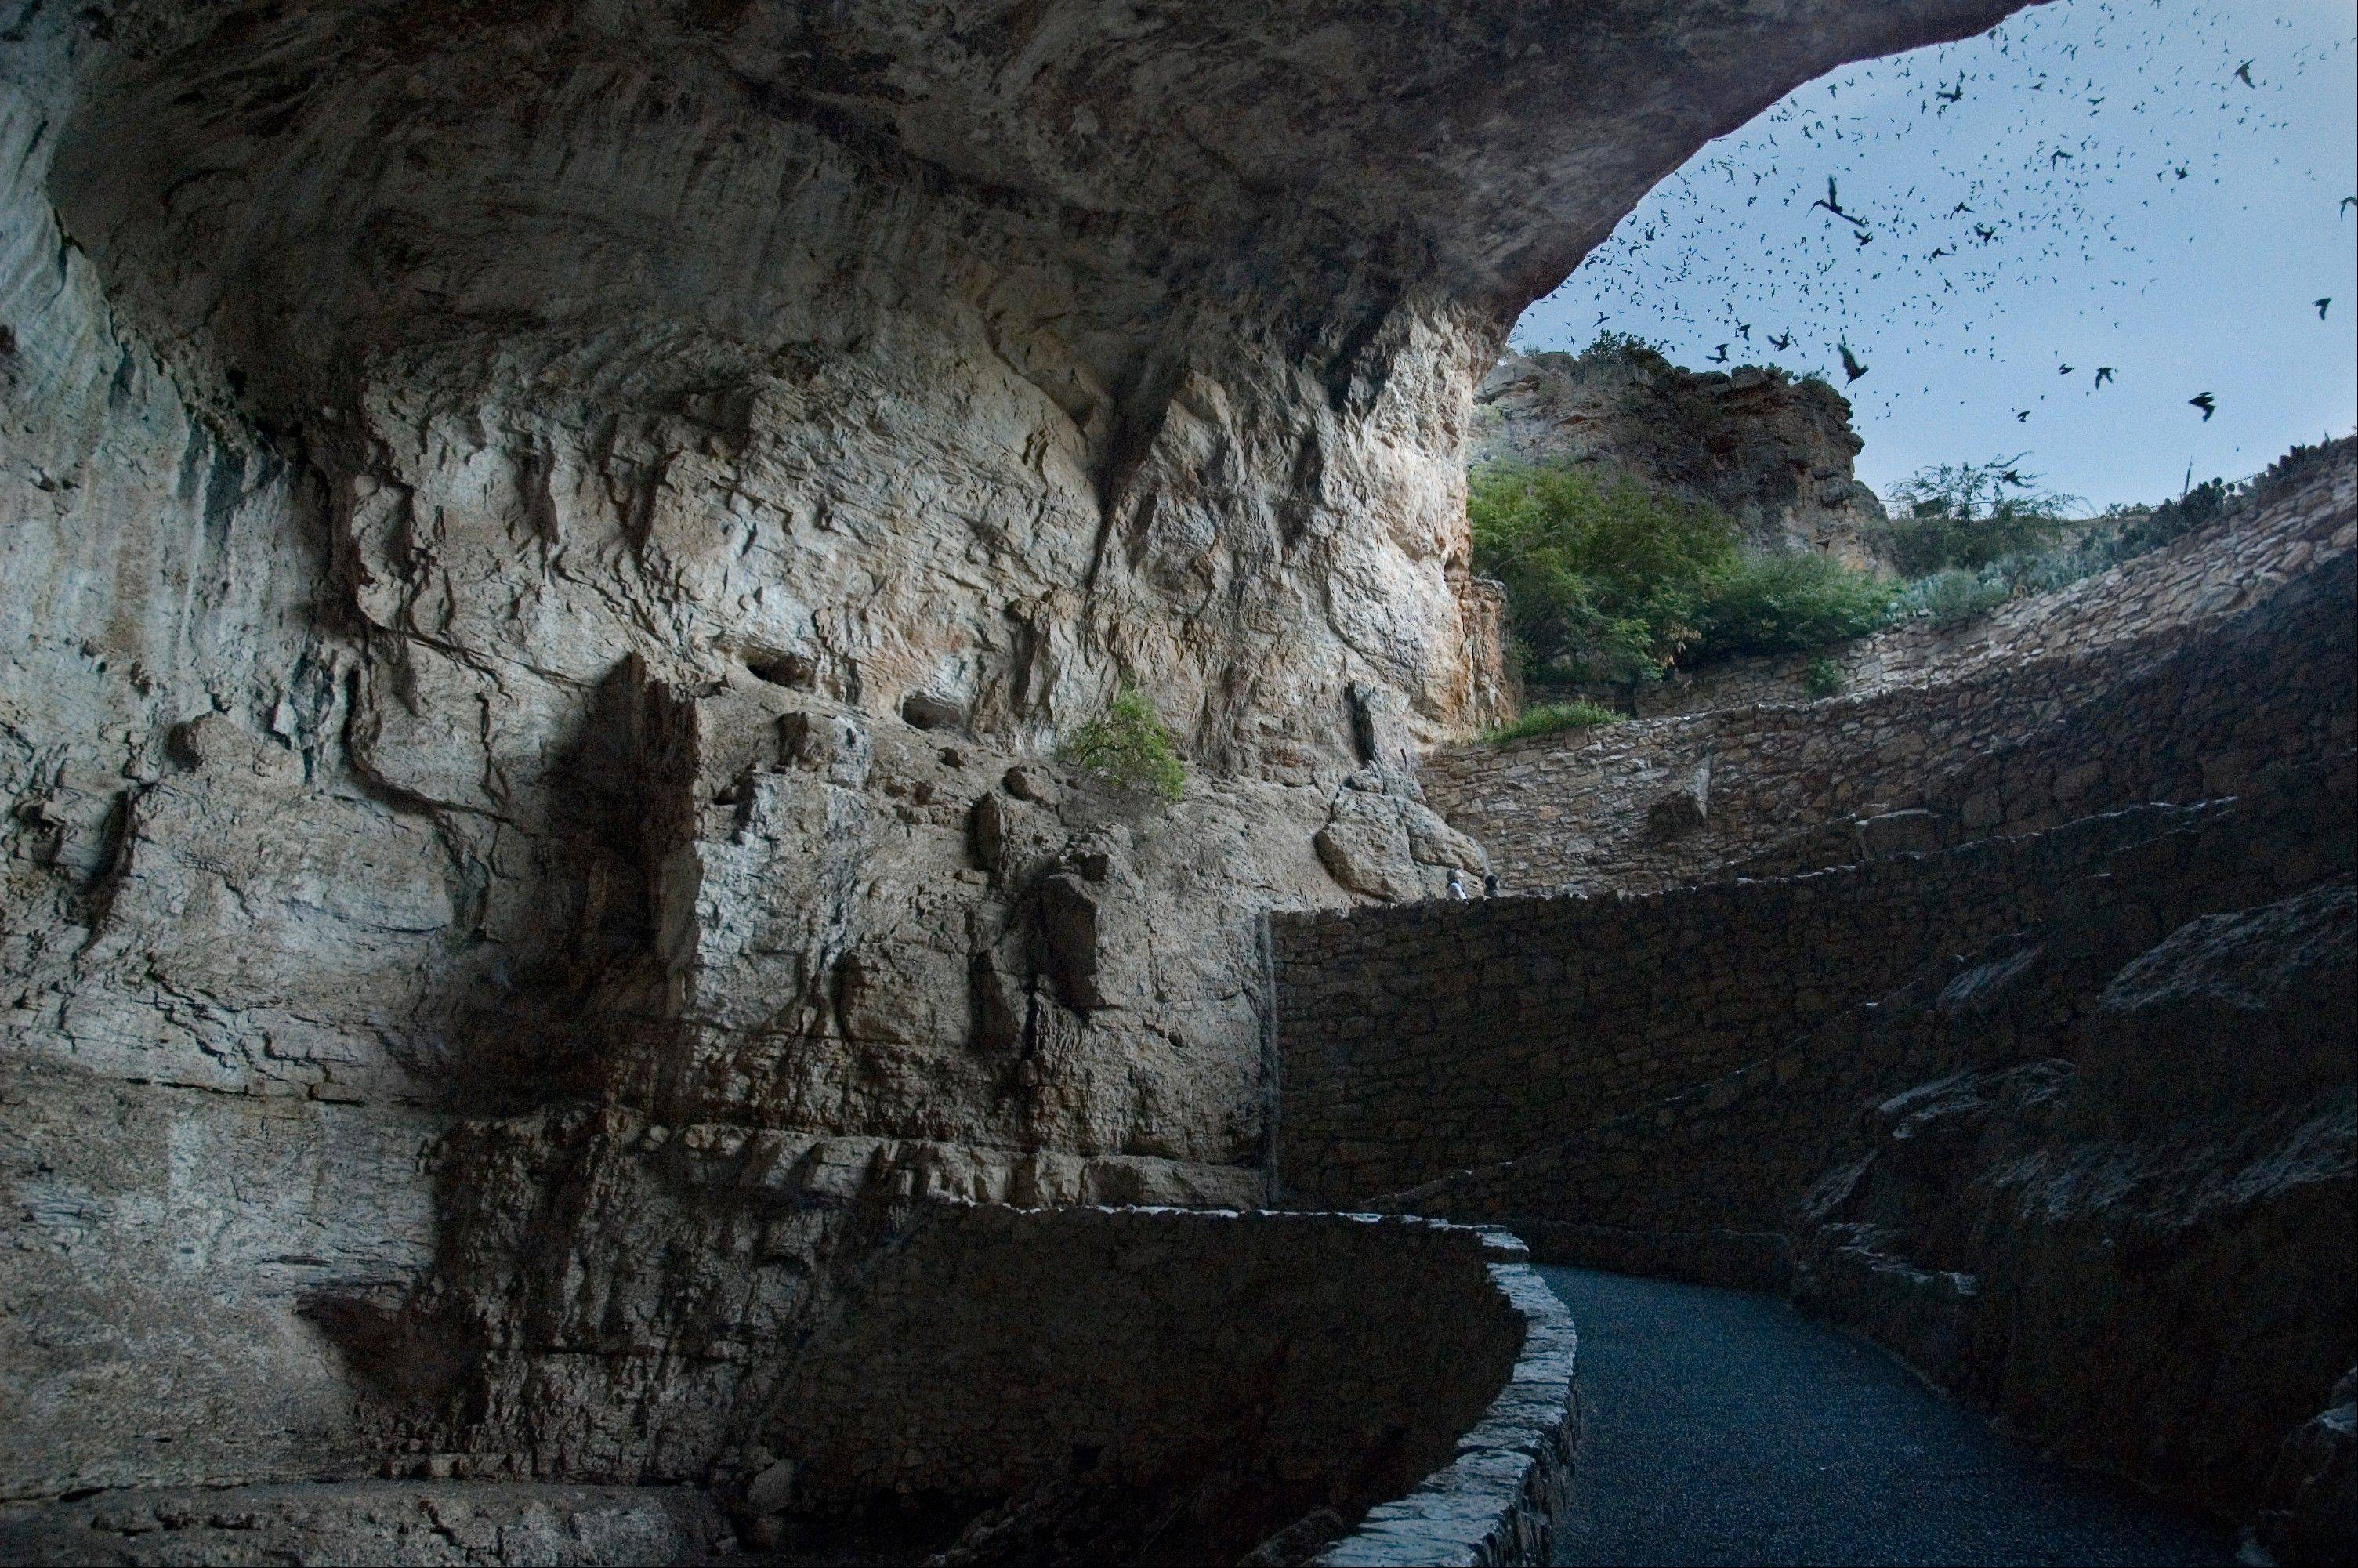 Each night thousands of bats emerge from Carlsbad Caverns in New Mexico.